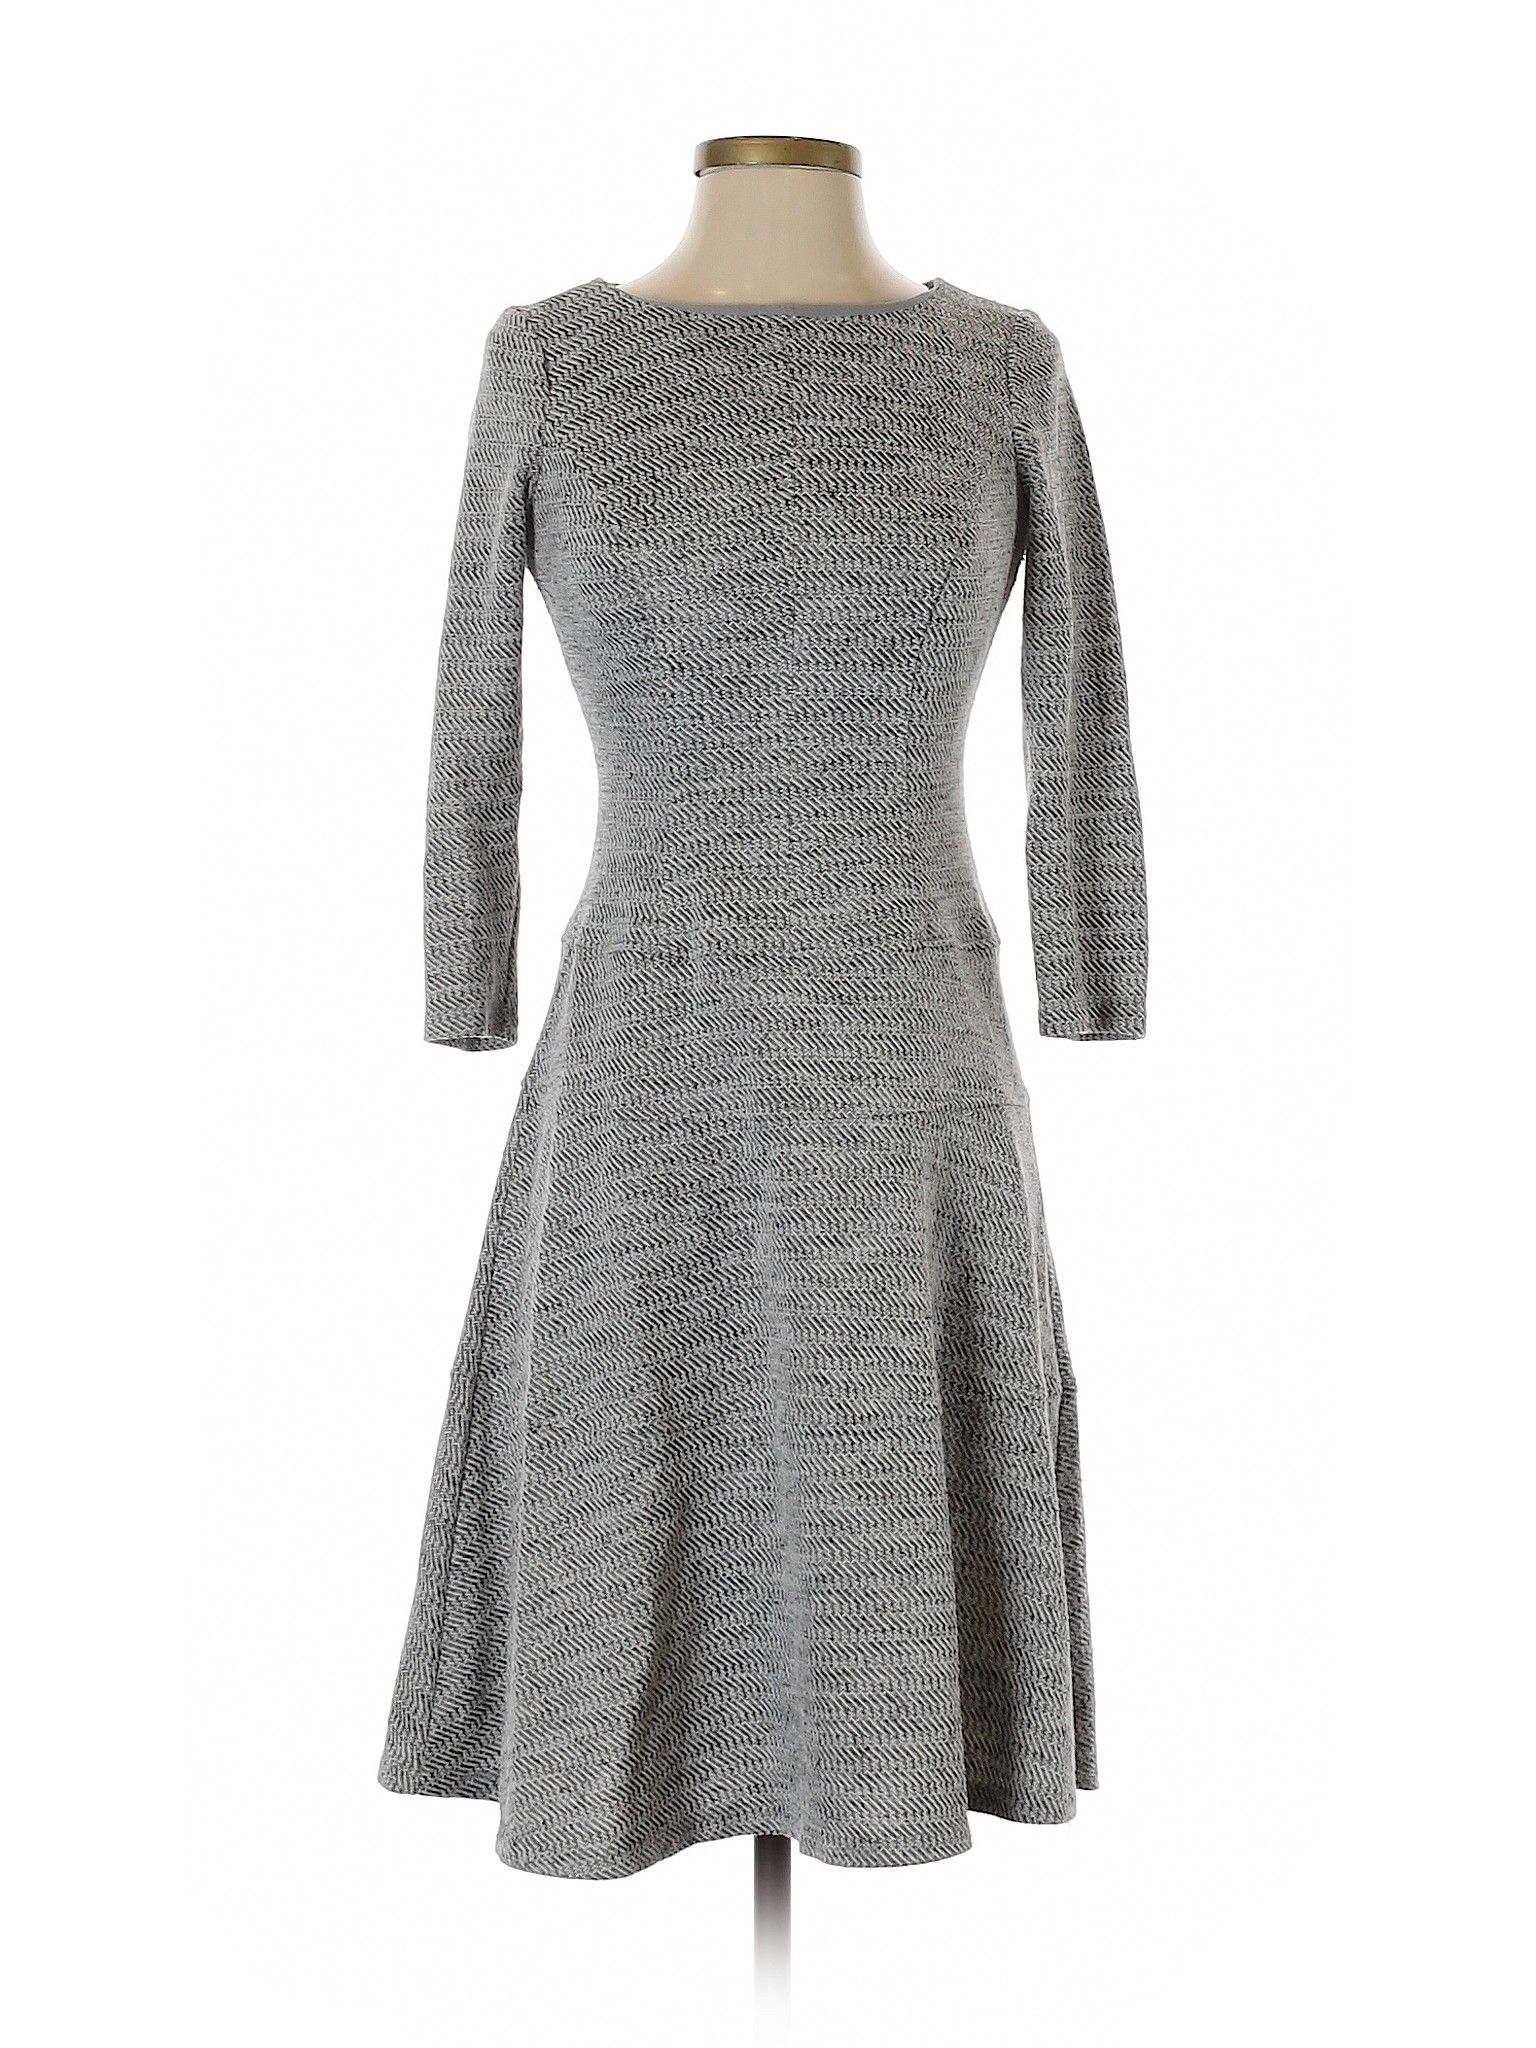 Anne Klein Casual Dress Fit Flare Gray Solid Dresses Used Size 2 Casual Dresses Casual Dresses For Women Casual Dress [ 2048 x 1536 Pixel ]